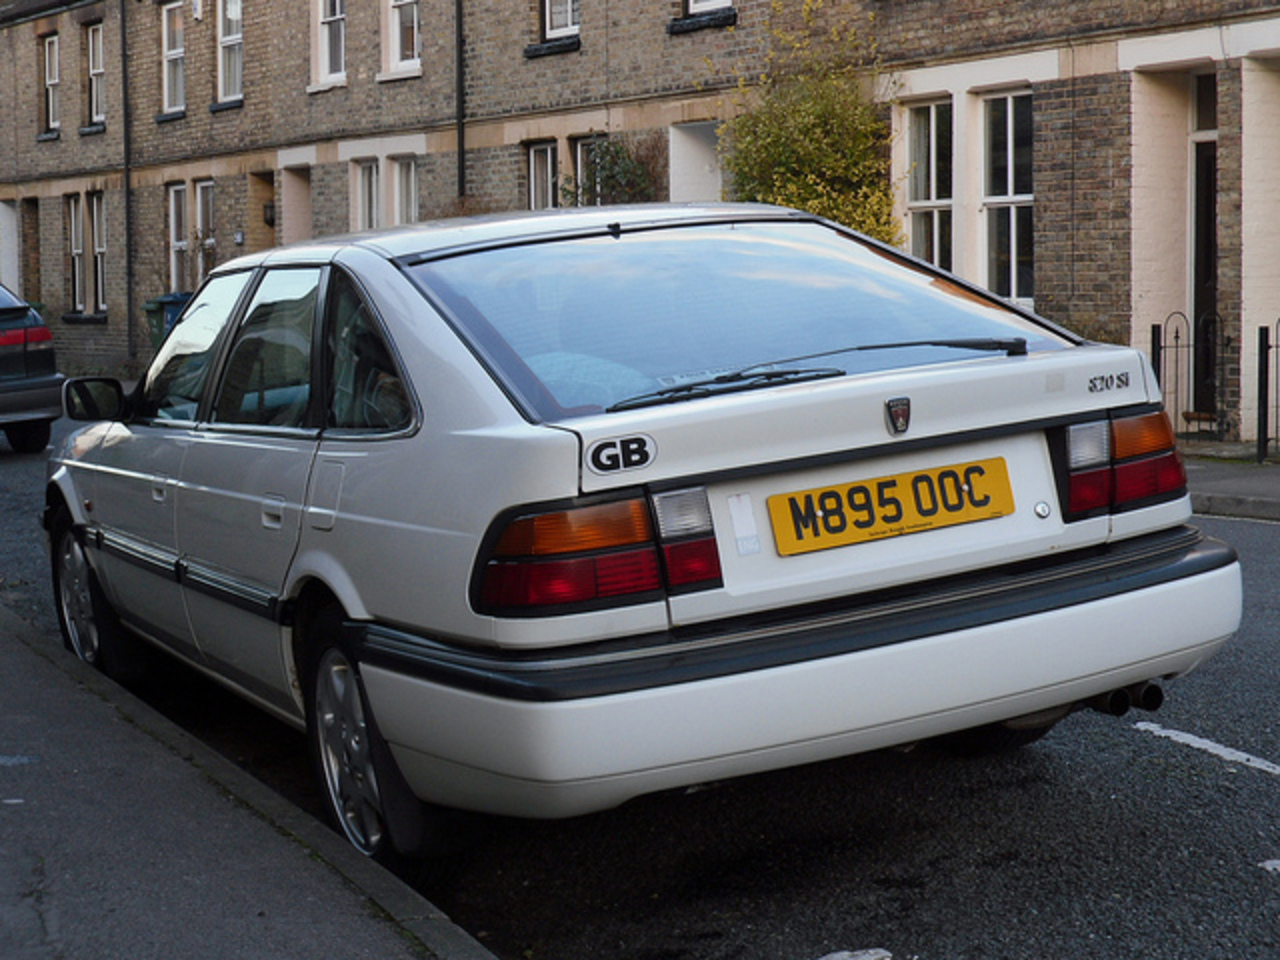 1995 Rover 820 Si 2.0 Automatic Hatchback. | Flickr - Photo Sharing!